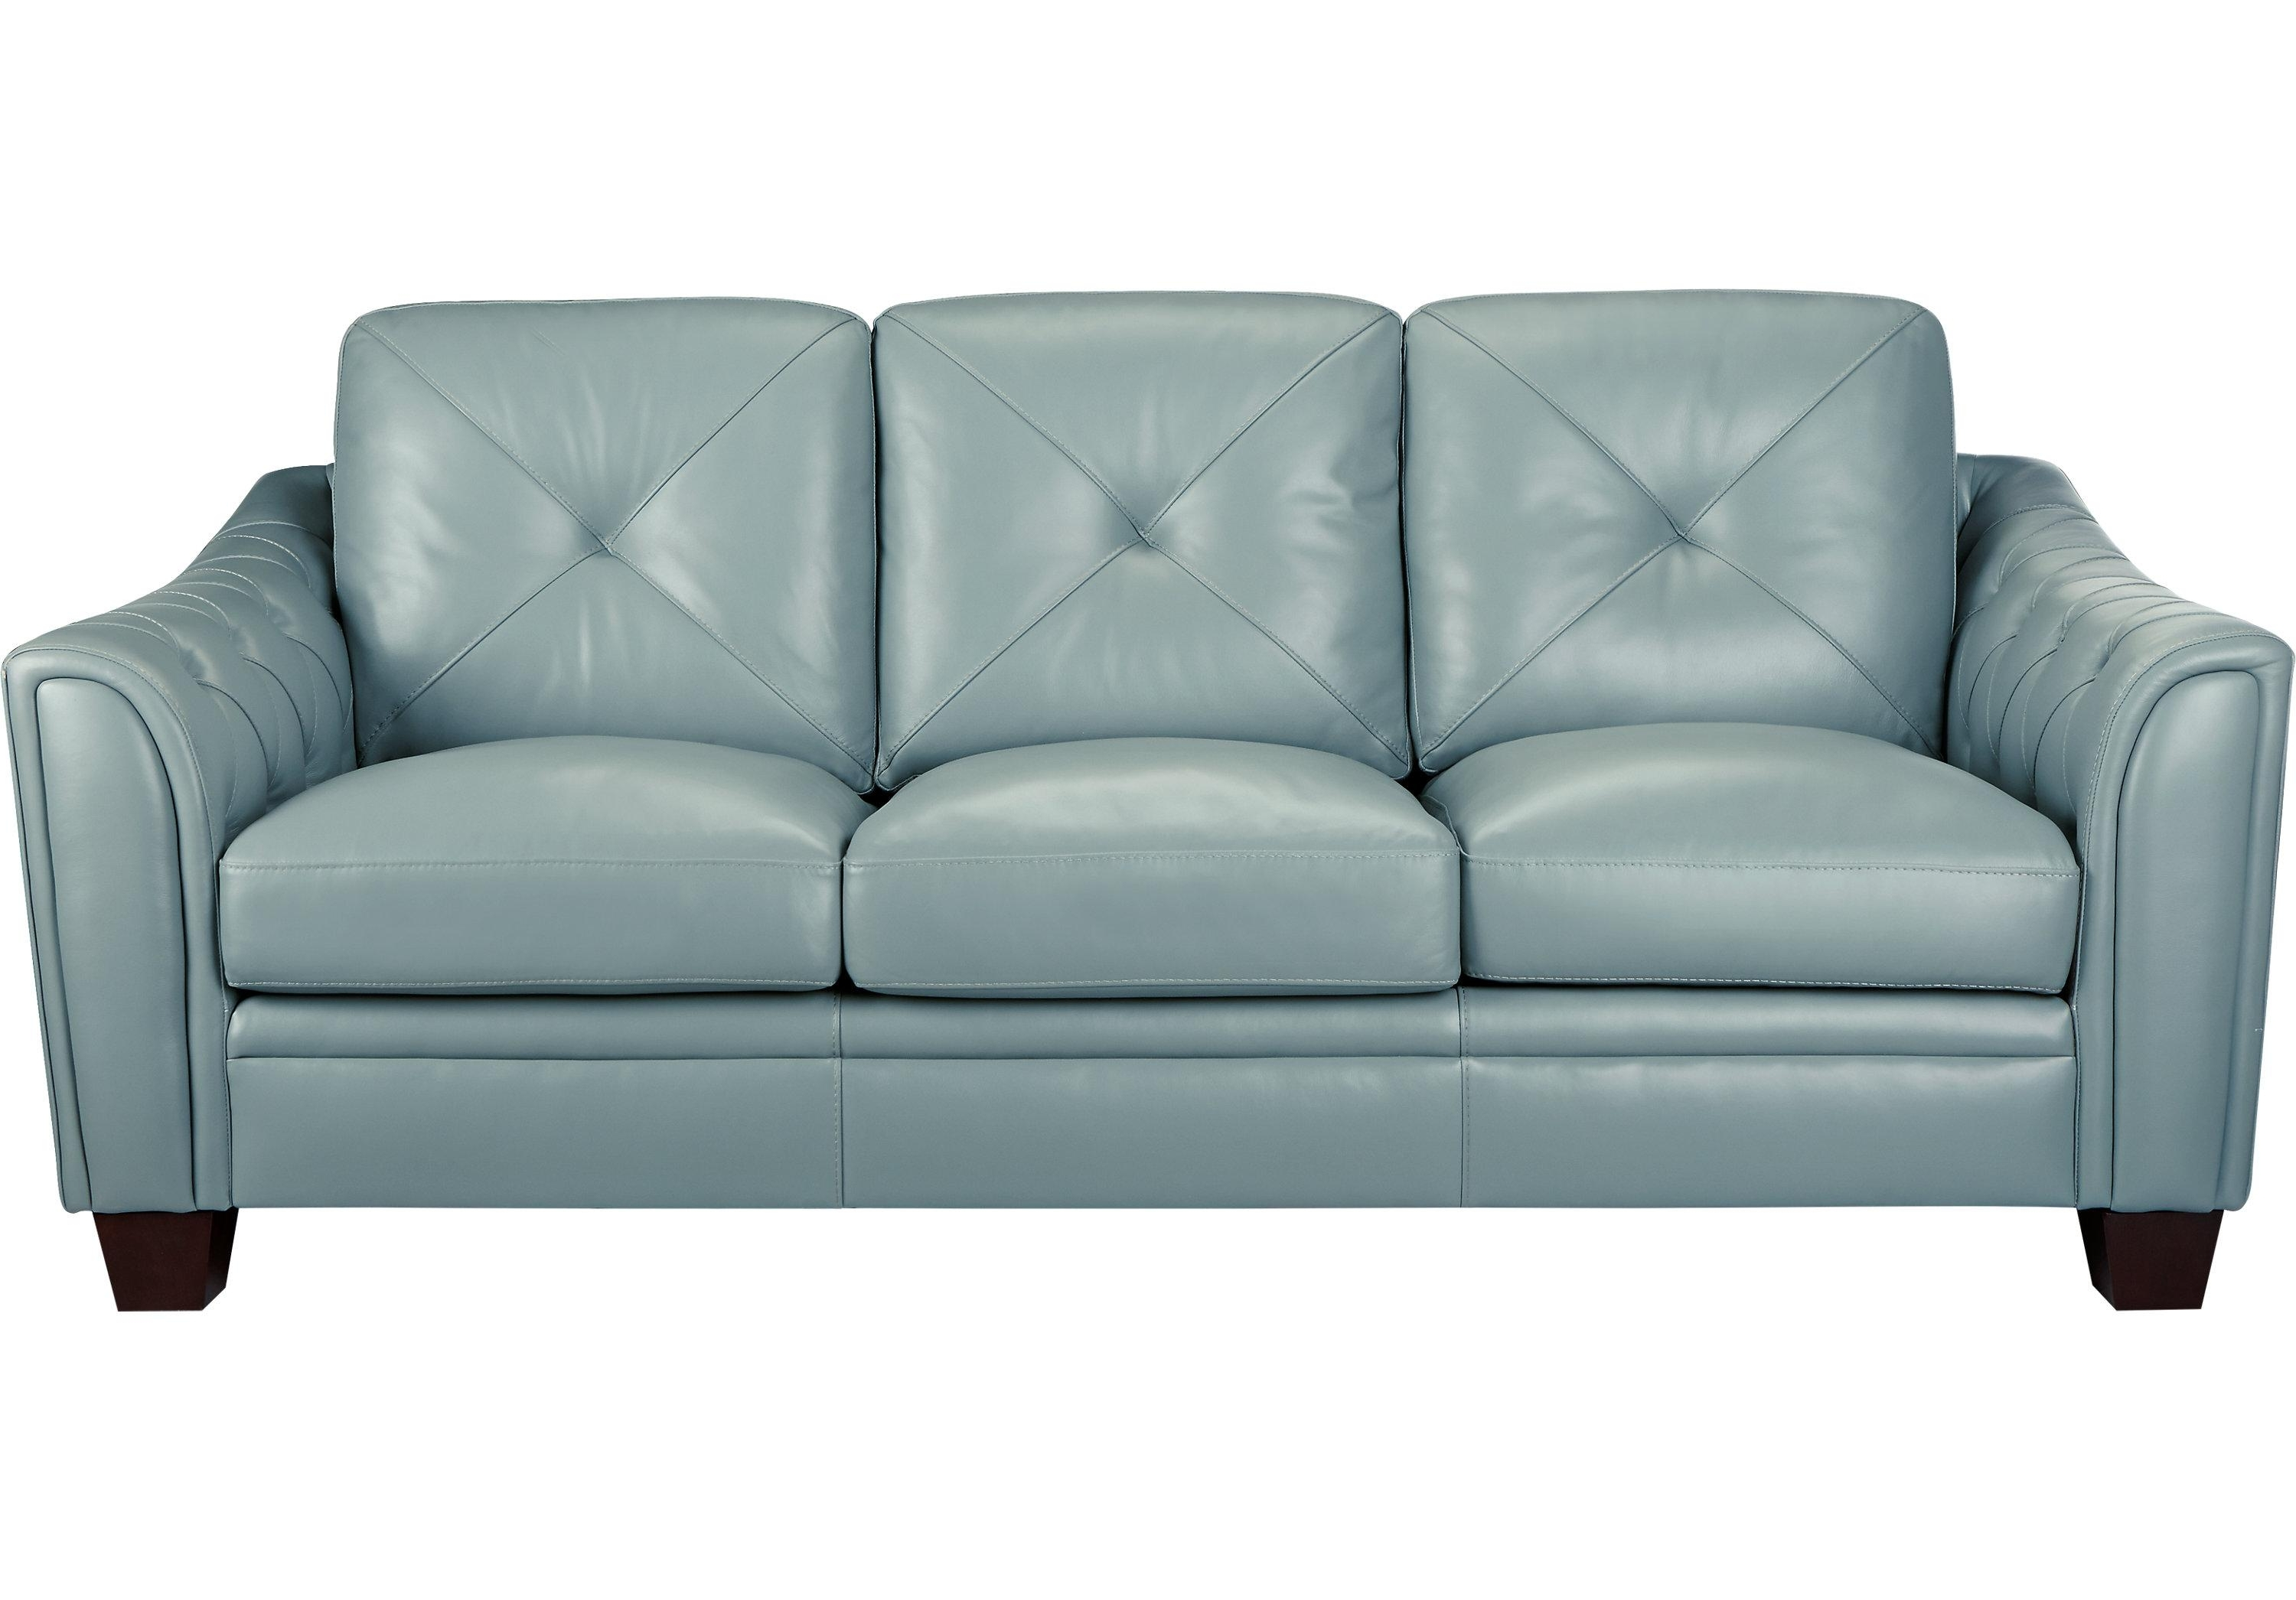 Famous Furniture : Rooms To Go Loveseat Best Of Picture Of Cindy Crawford Regarding Cindy Crawford Sofas (View 8 of 15)